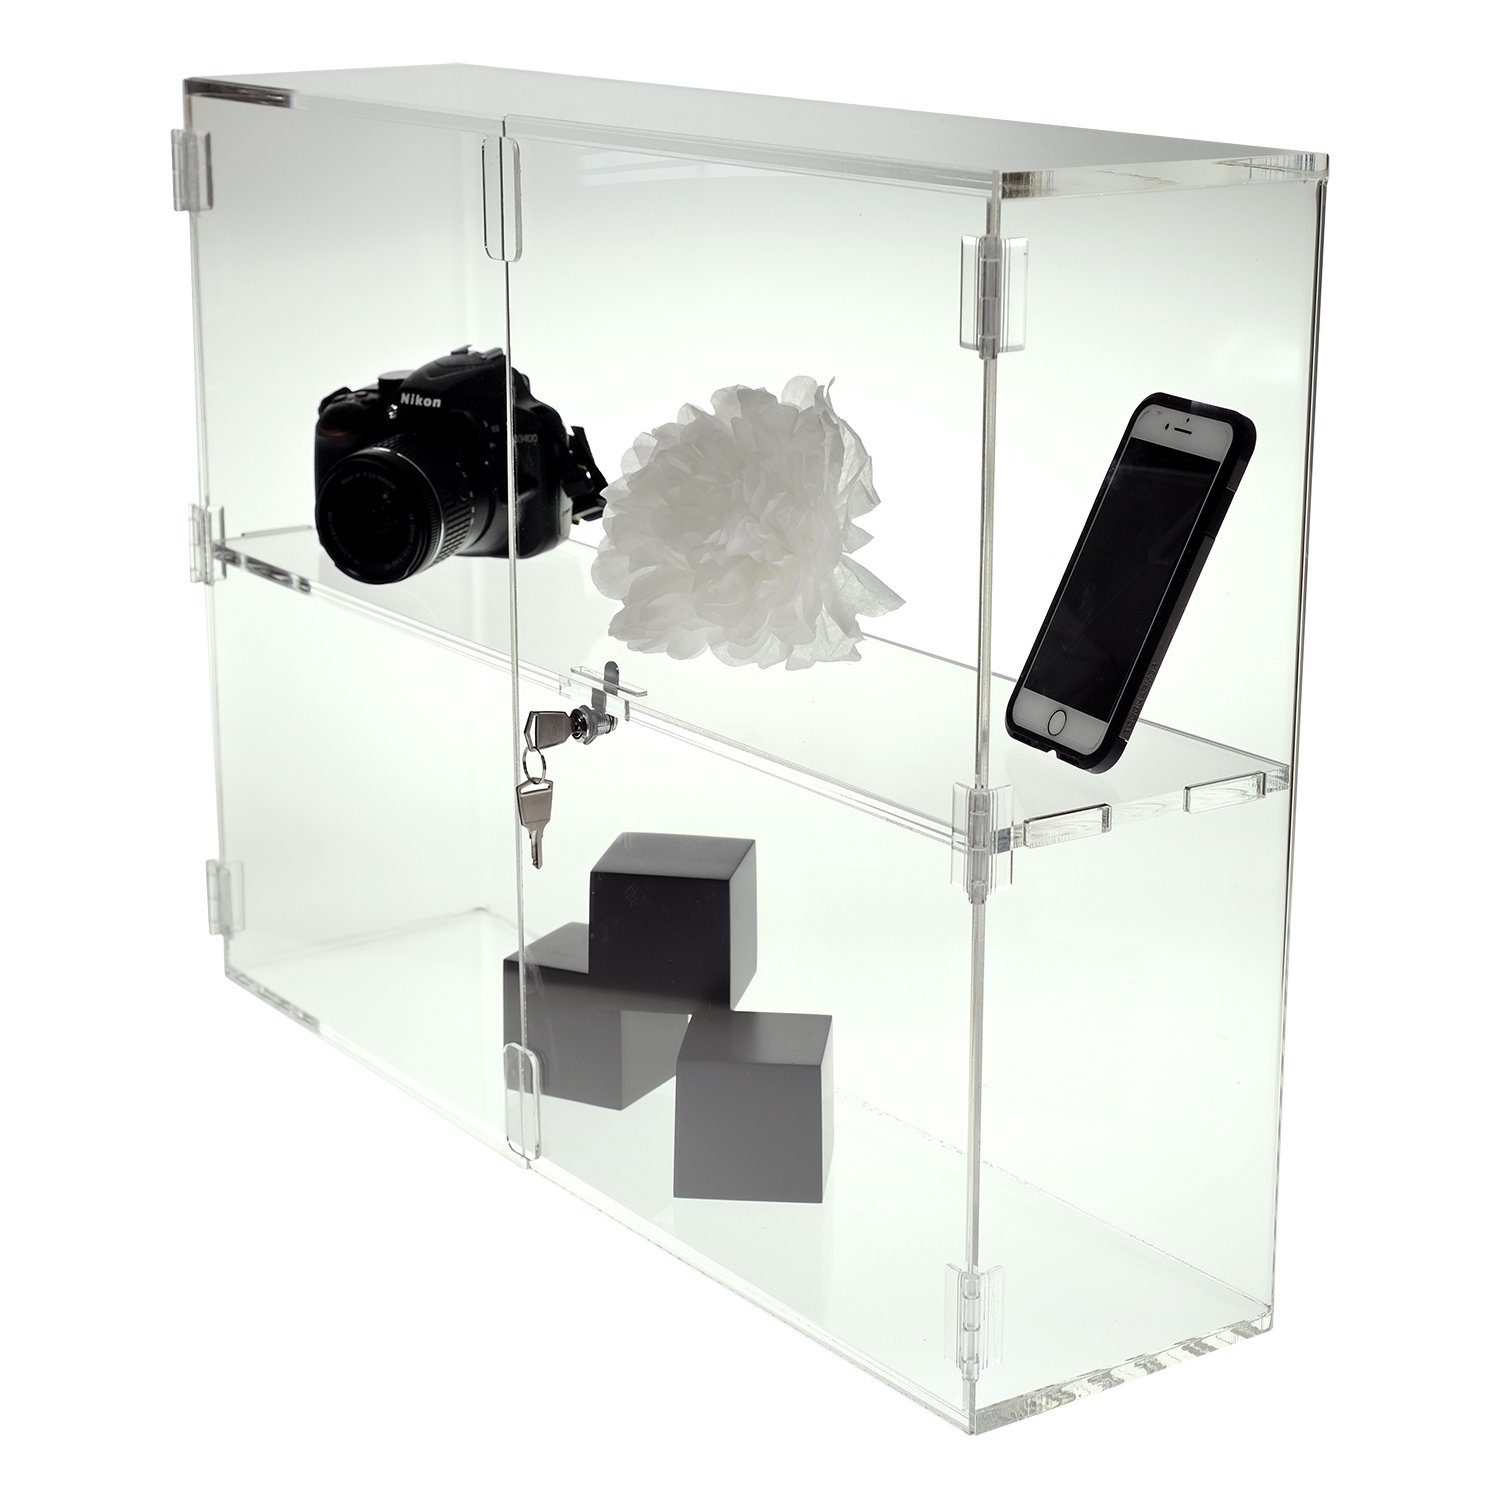 SOURCEONE.ORG Source One Deluxe Clear Acrylic Shelf Countertop Organization Display Case (Small, 1 Shelf)